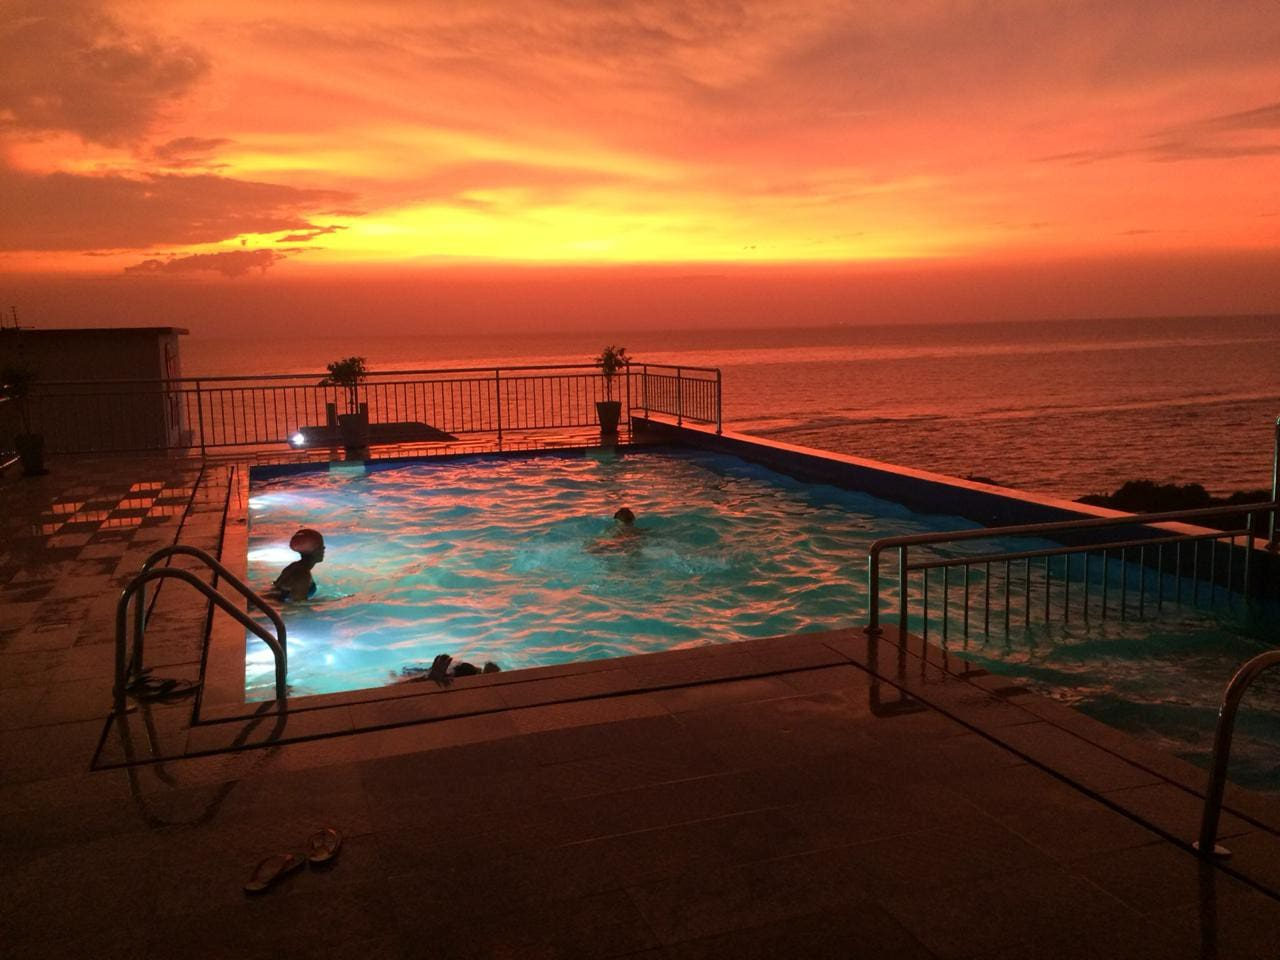 A Spectacular View from the Rooftop at night which will just take your breath away. A place to enjoy the beautiful sunset overlooking the Indian Ocean.